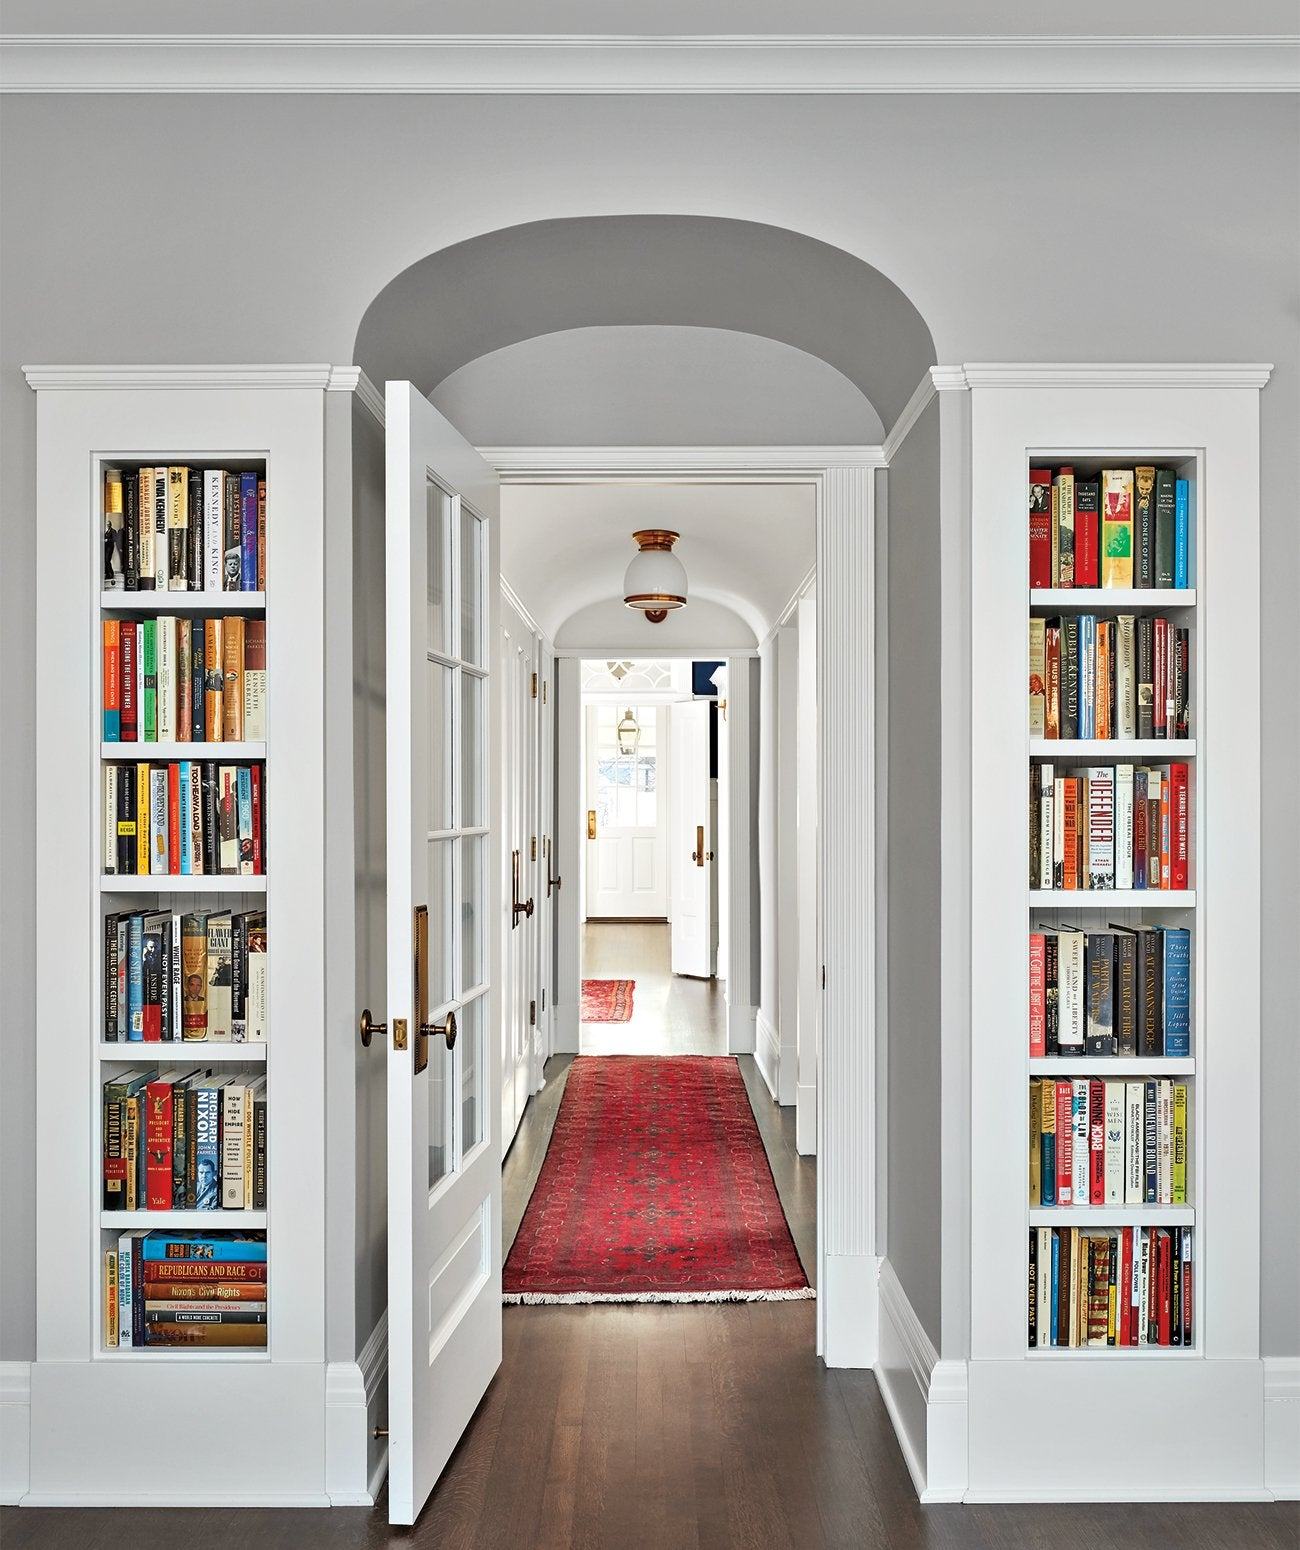 A door frame with bookshelves on either side/Photography:Dustin Halleck/A second book-filled room in the home above, this office features custom bookshelves, and historically accurate hardware and French doors.